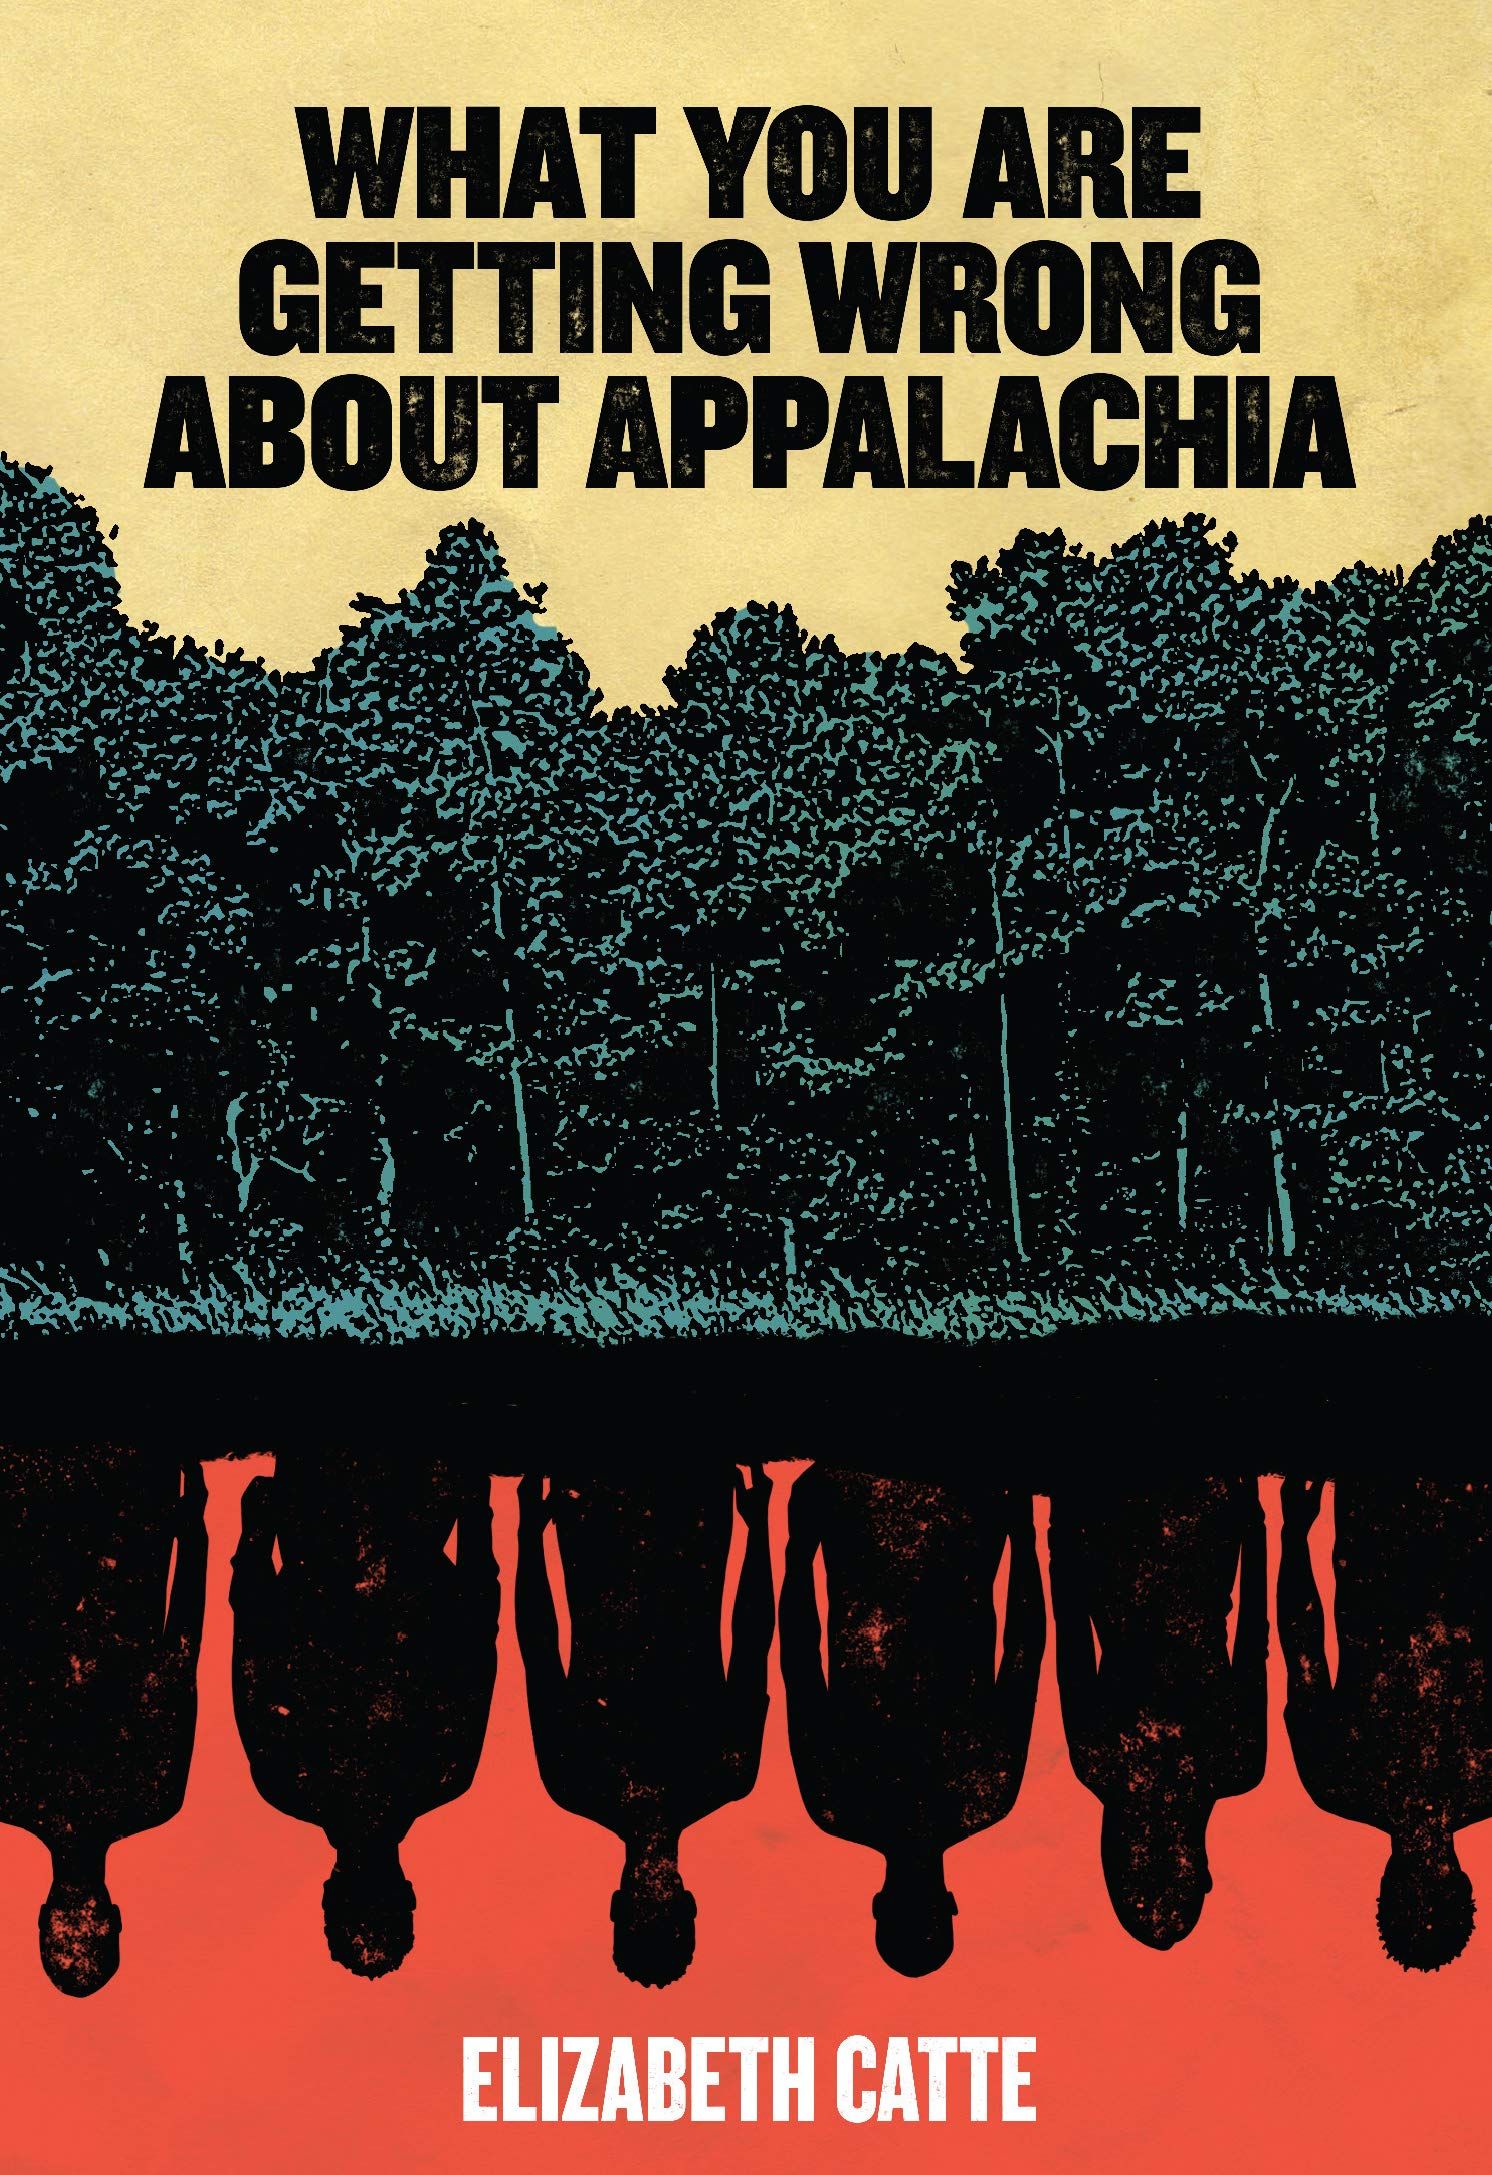 Image result for what you are getting wrong about appalachia